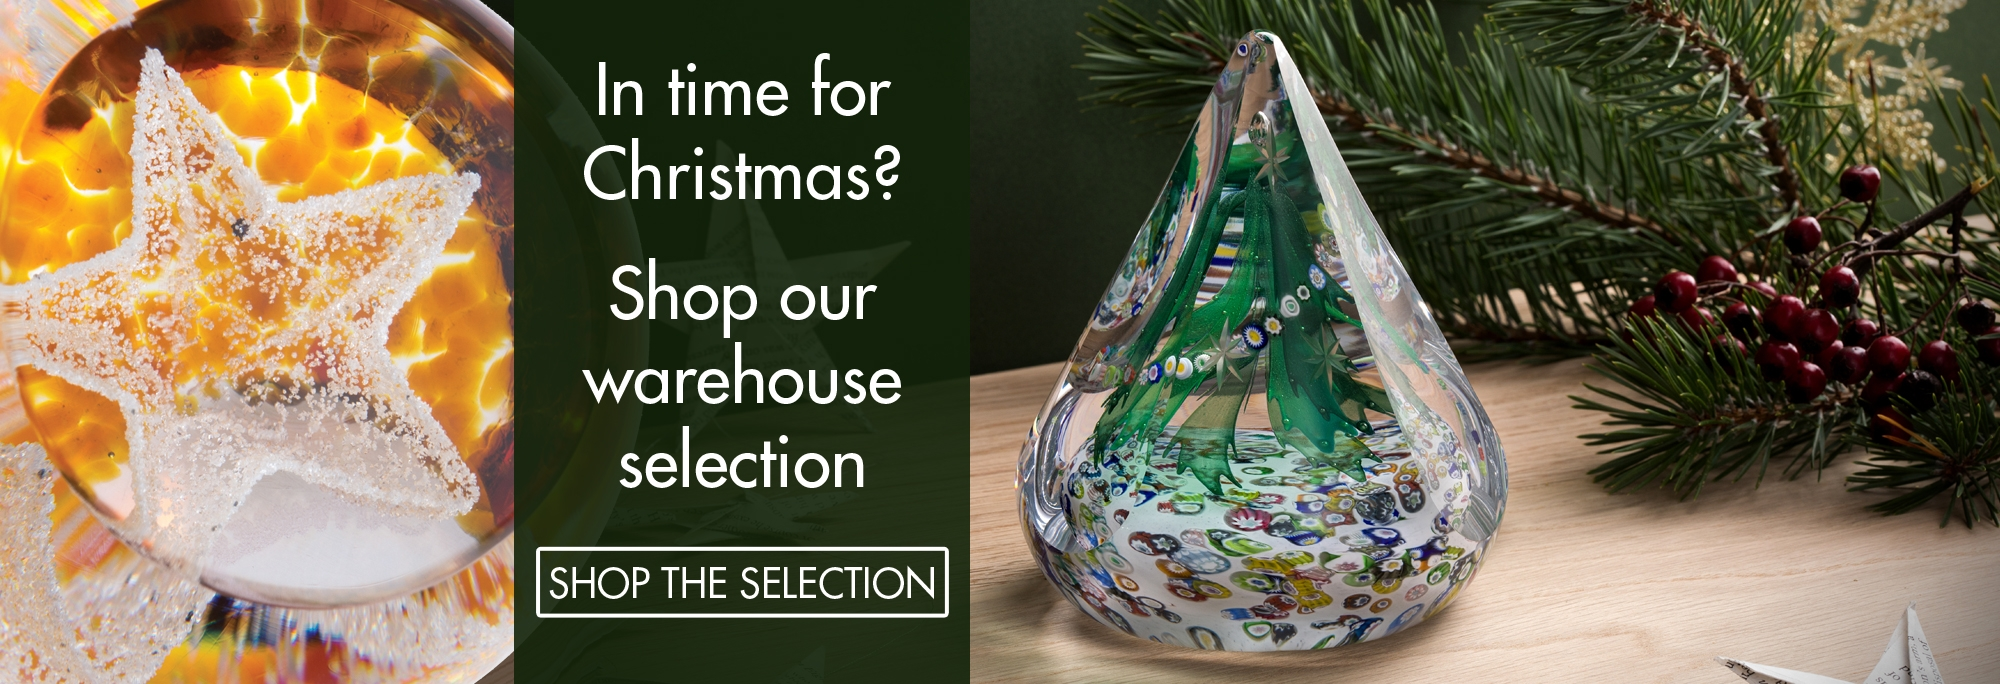 Caithness Glass - In time for Christmas?